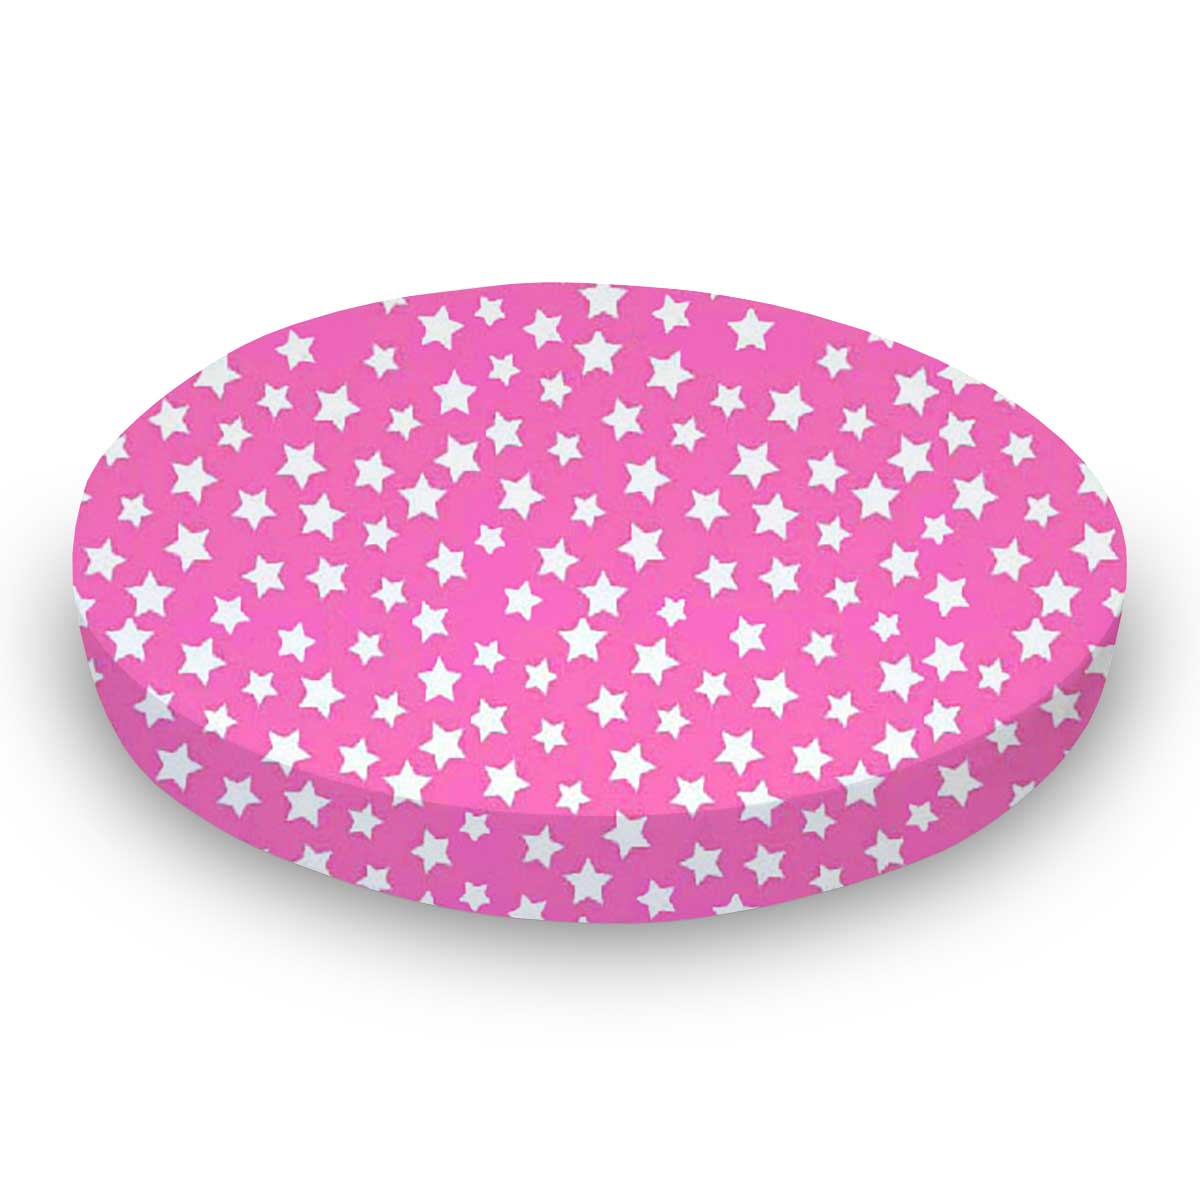 Primary Stars White On Pink Woven